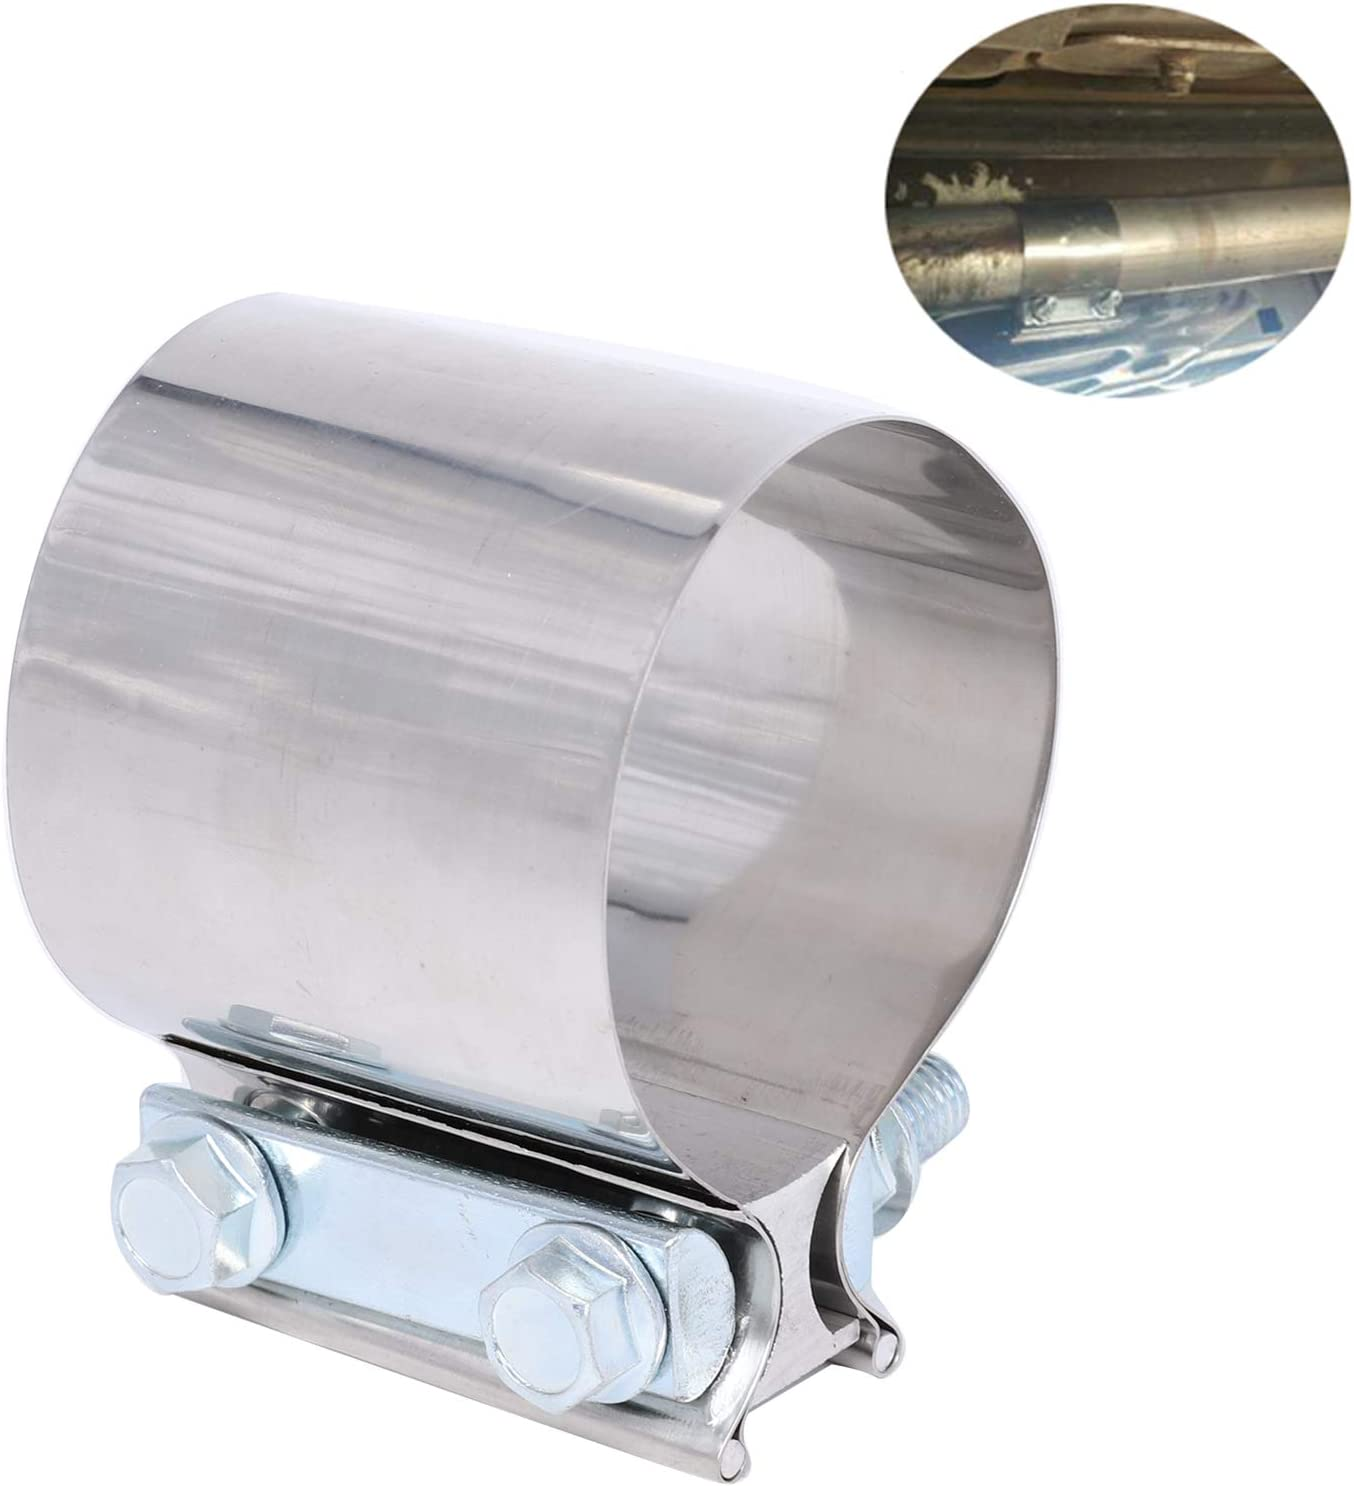 BETTERCLOUD 2.25 Stainless Steel Butt Joint Band Exhaust Clamp with I Block